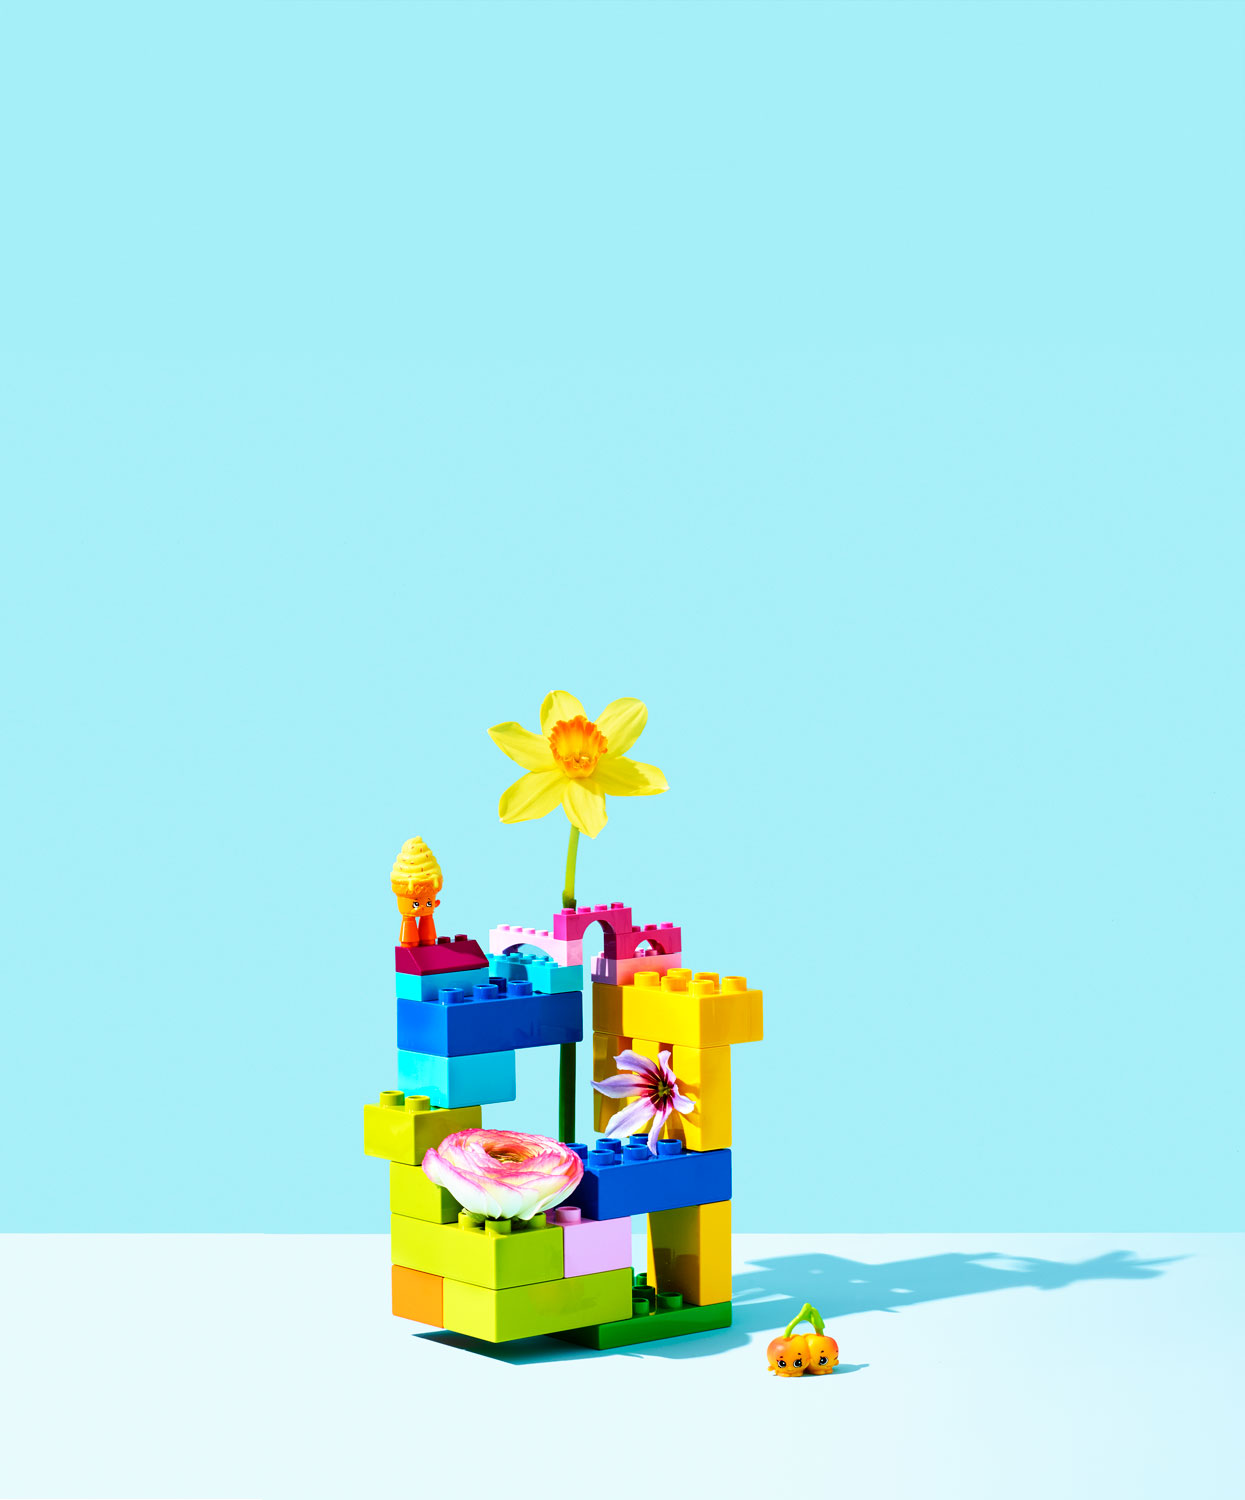 Lego Tower with Flower